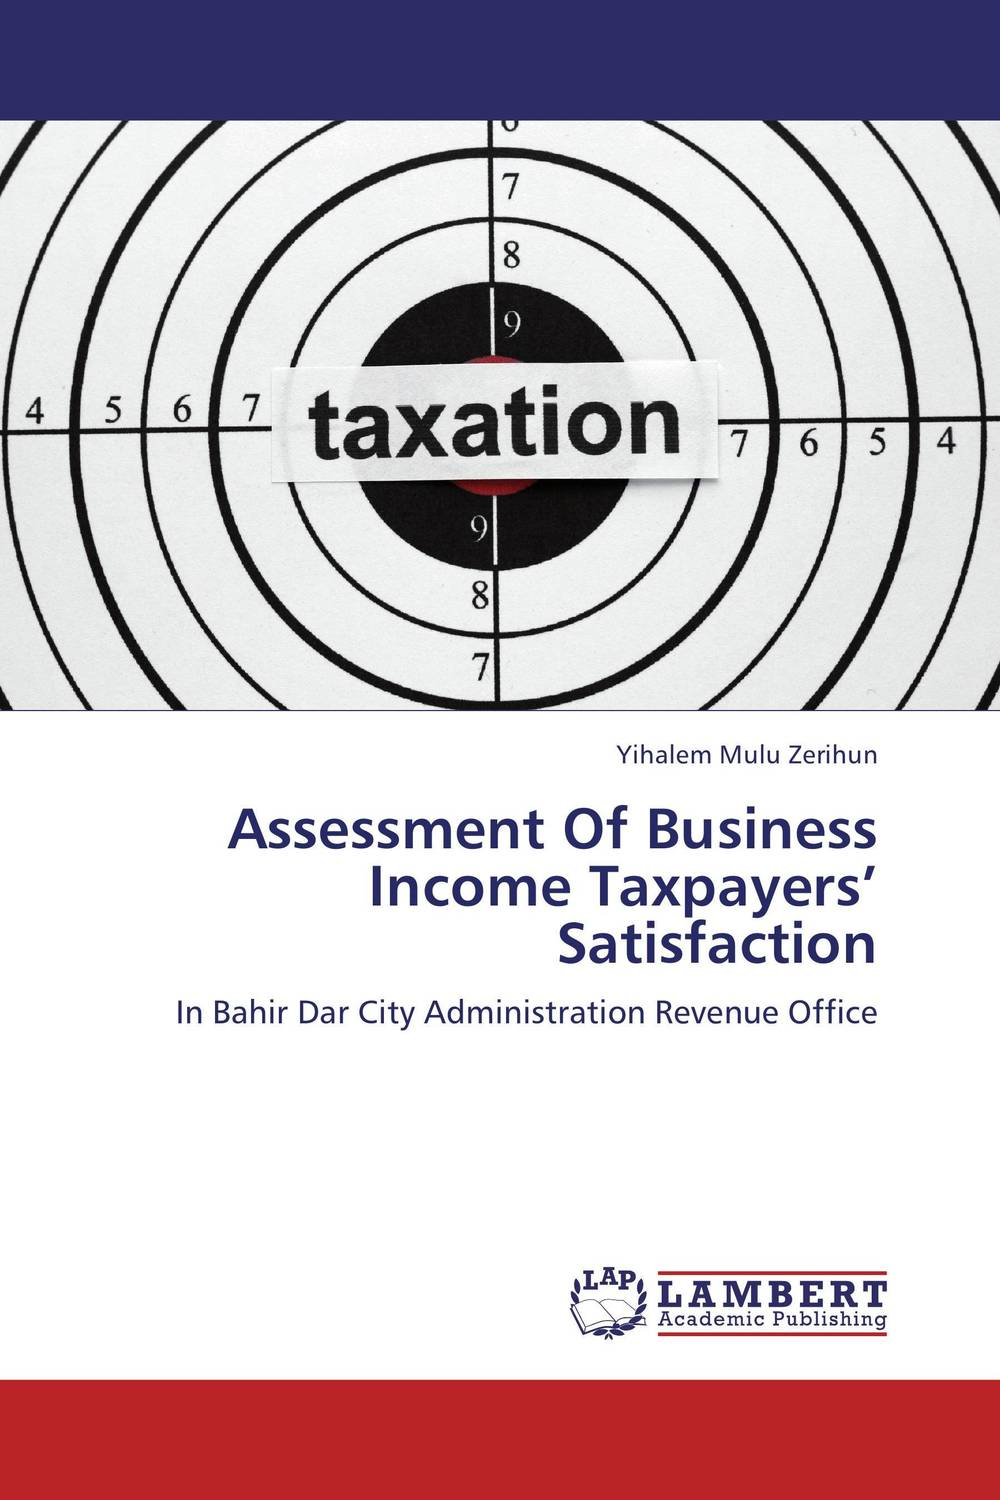 Assessment Of Business Income Taxpayers' Satisfaction